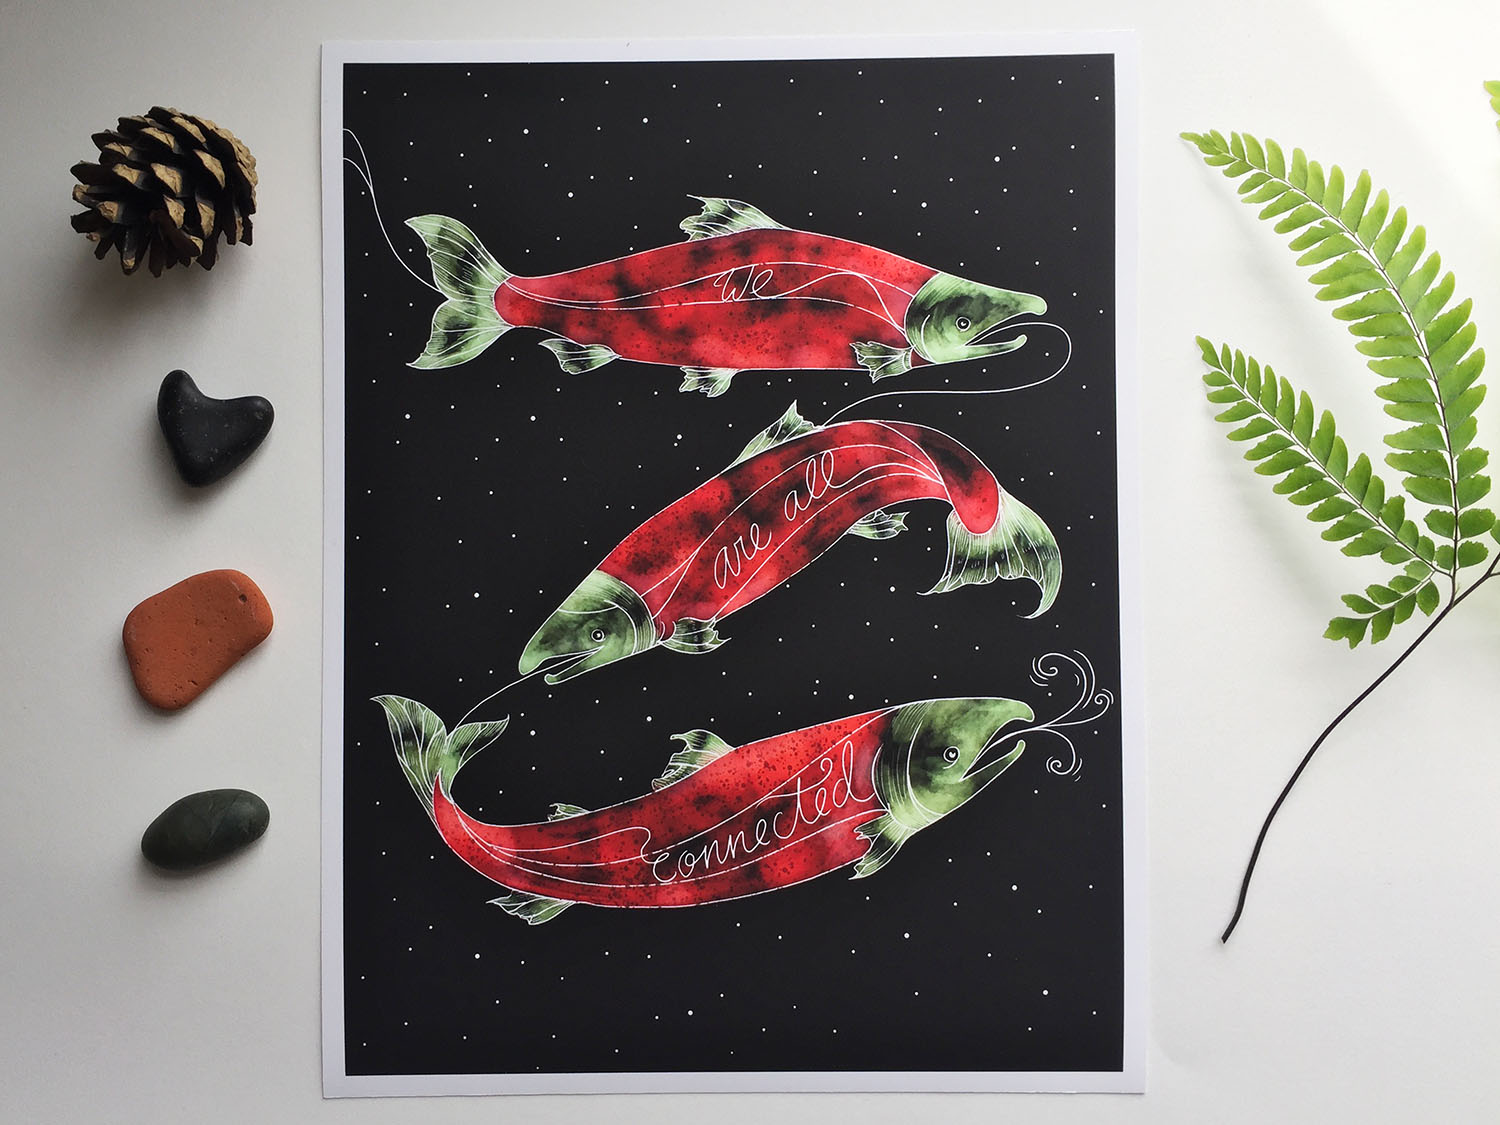 sarahclement-connected-salmon-photo-web-4.jpg